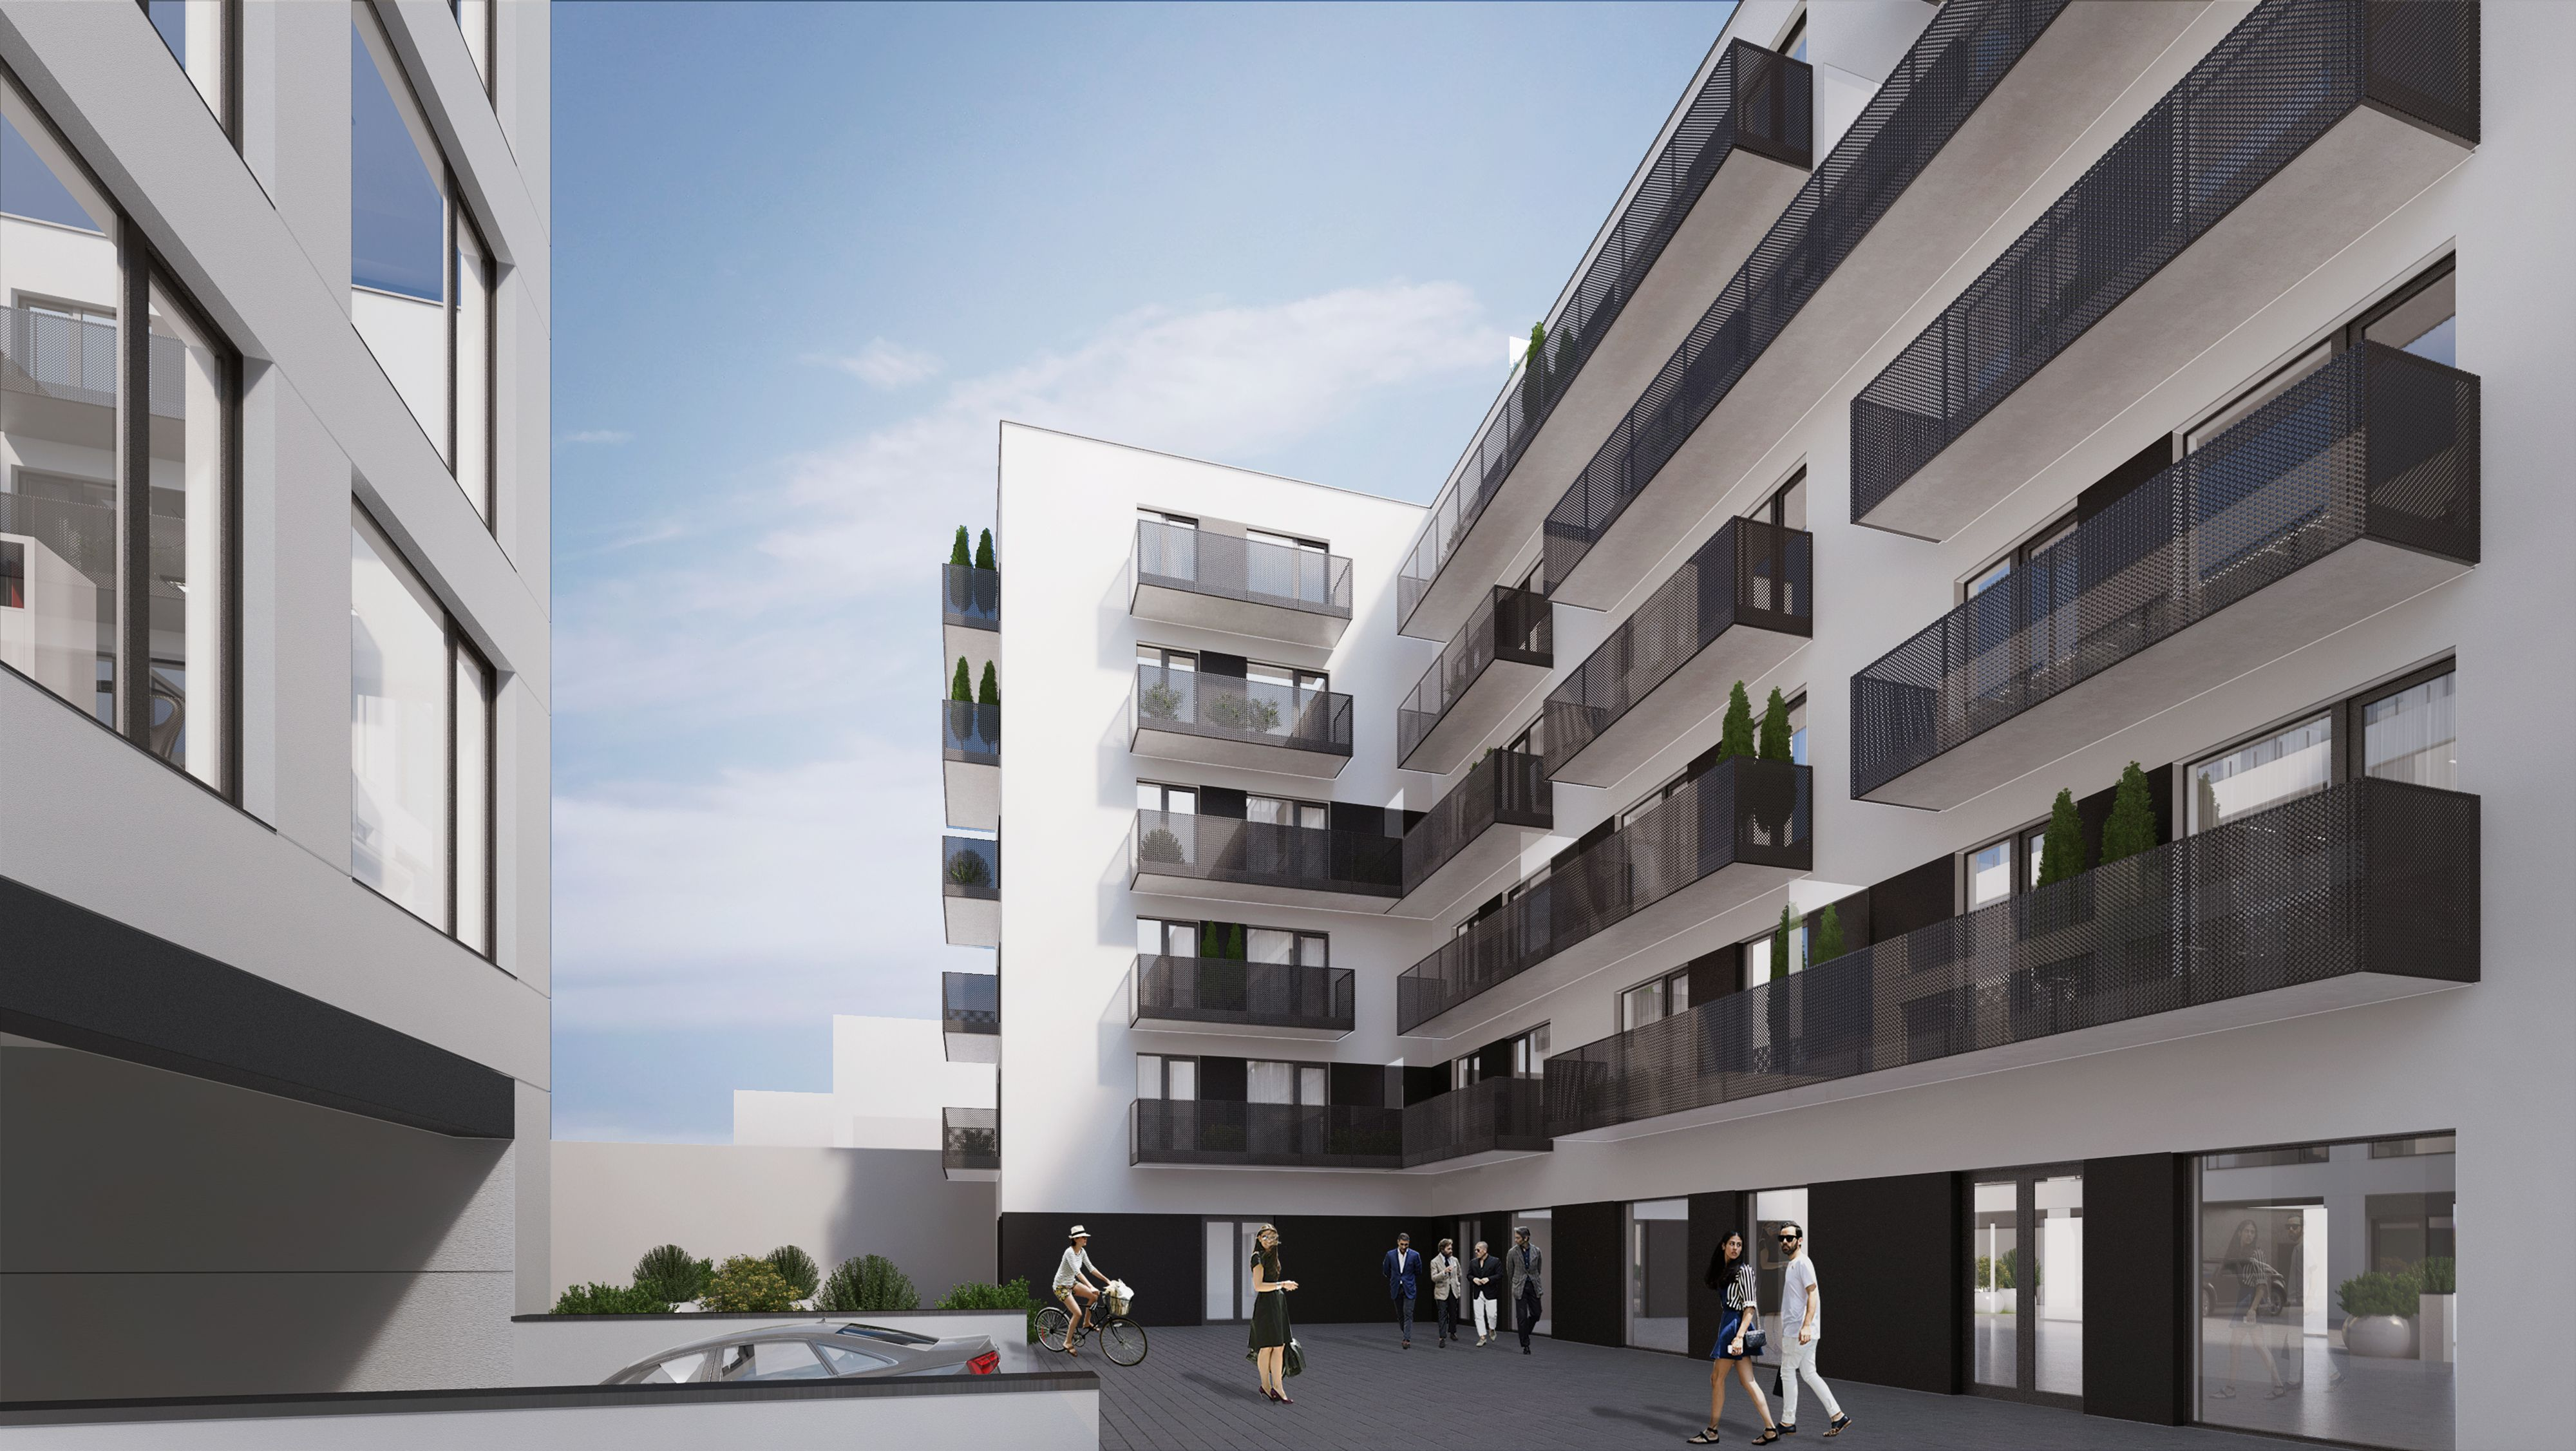 MG8 Residence building located in Poznan, Poland. Designed by Easst.com. 2017